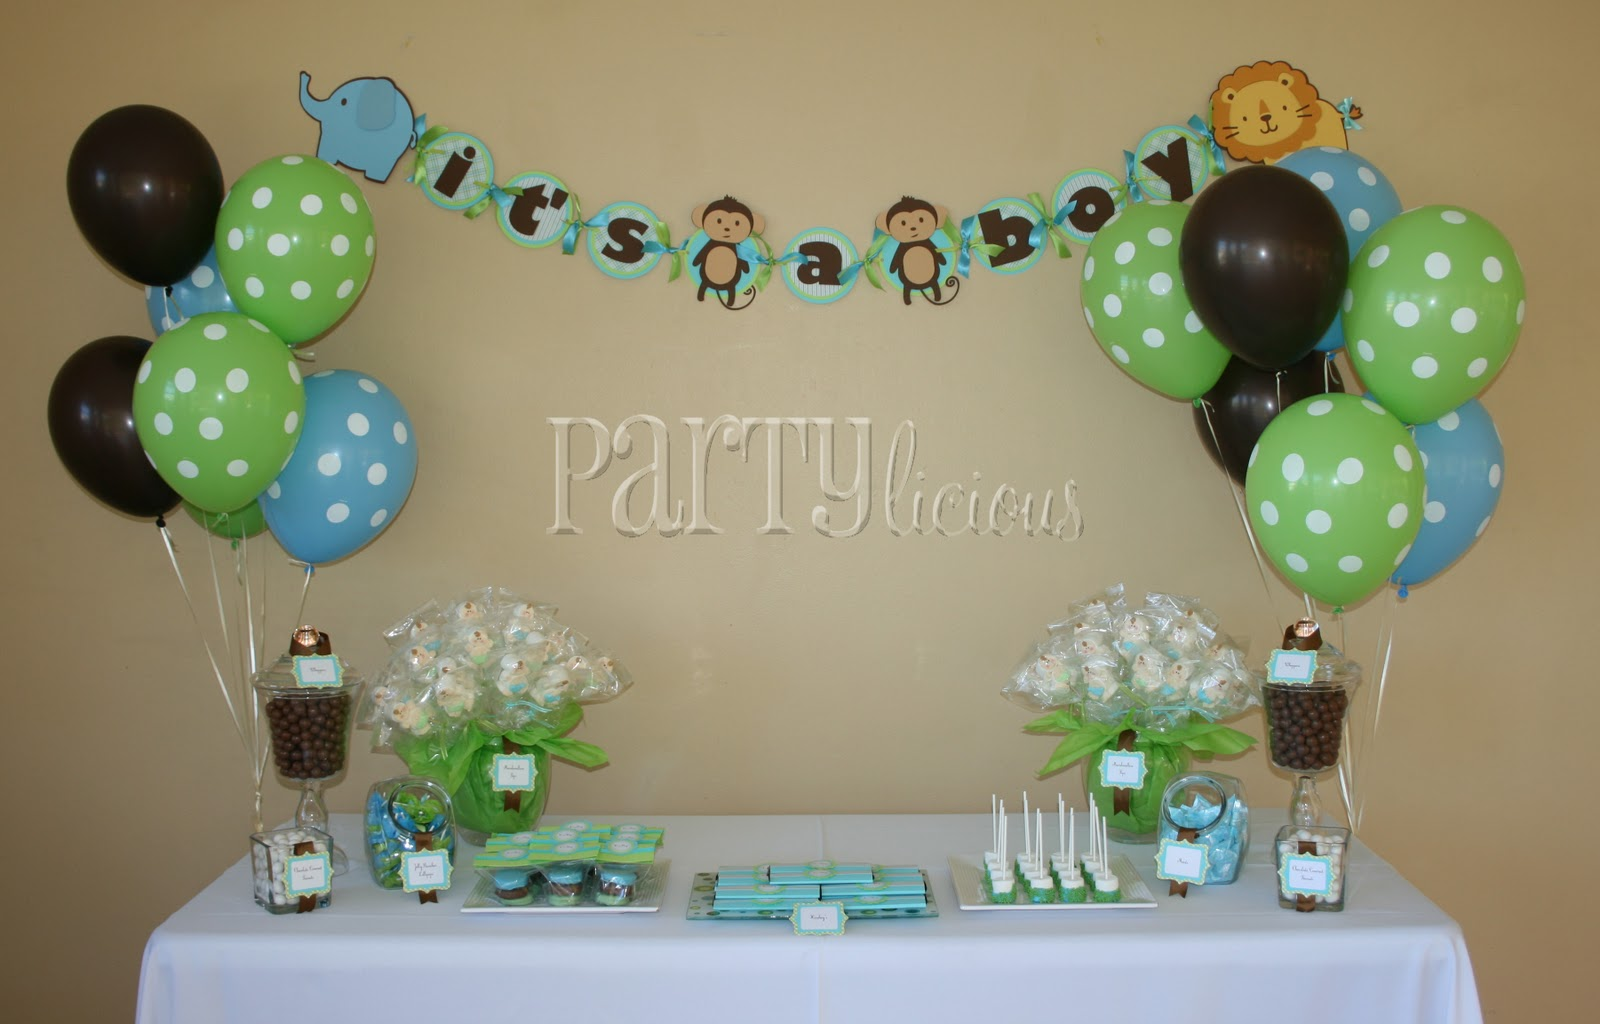 Partylicious events pr partylicious and safari baby shower for Baby shower decoration pictures ideas